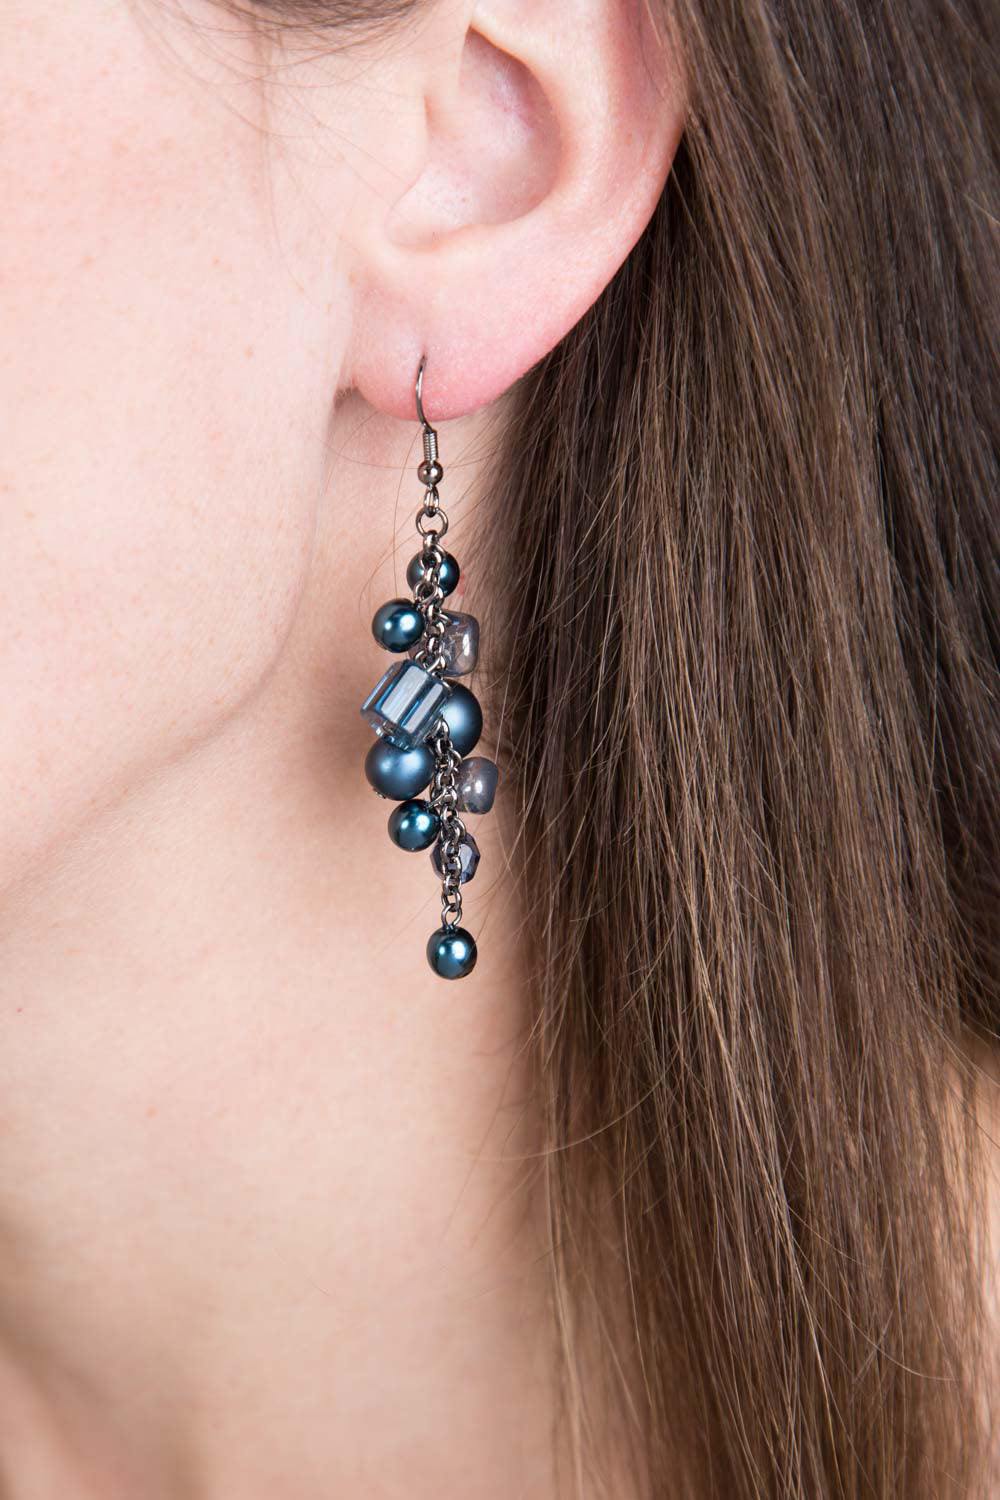 Type 2 Blue Moon Earrings